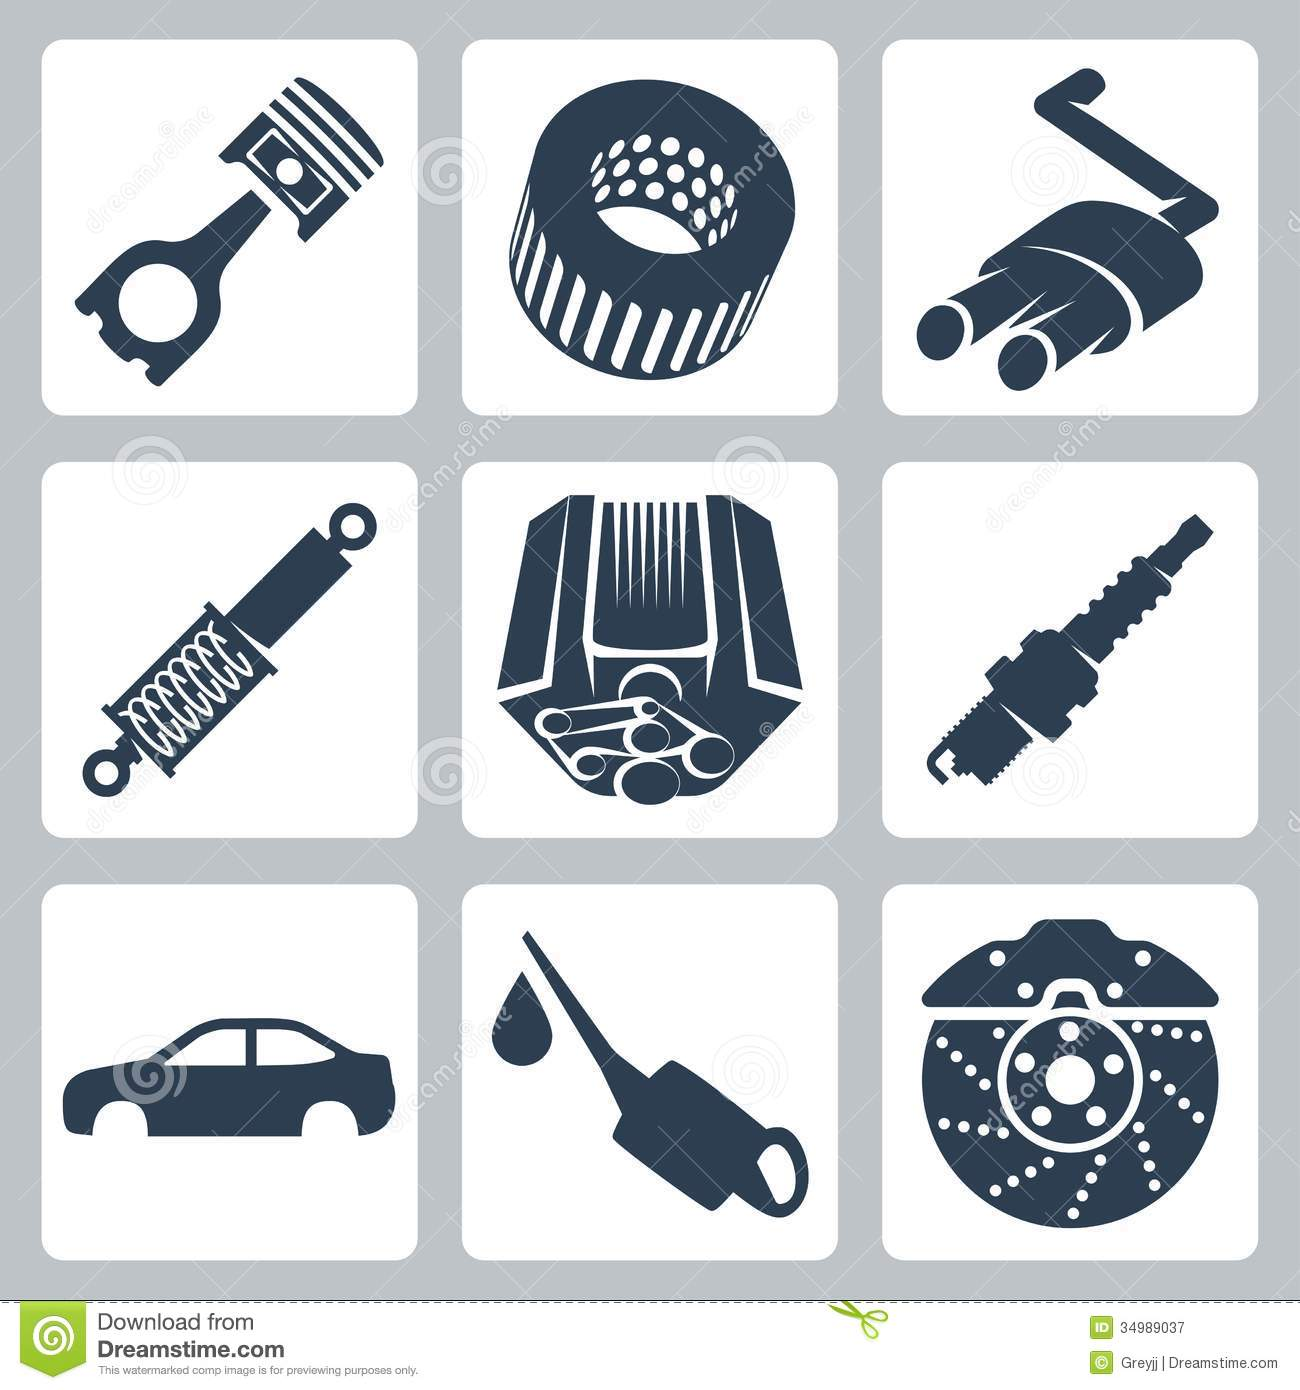 Free Vector Art Car Parts